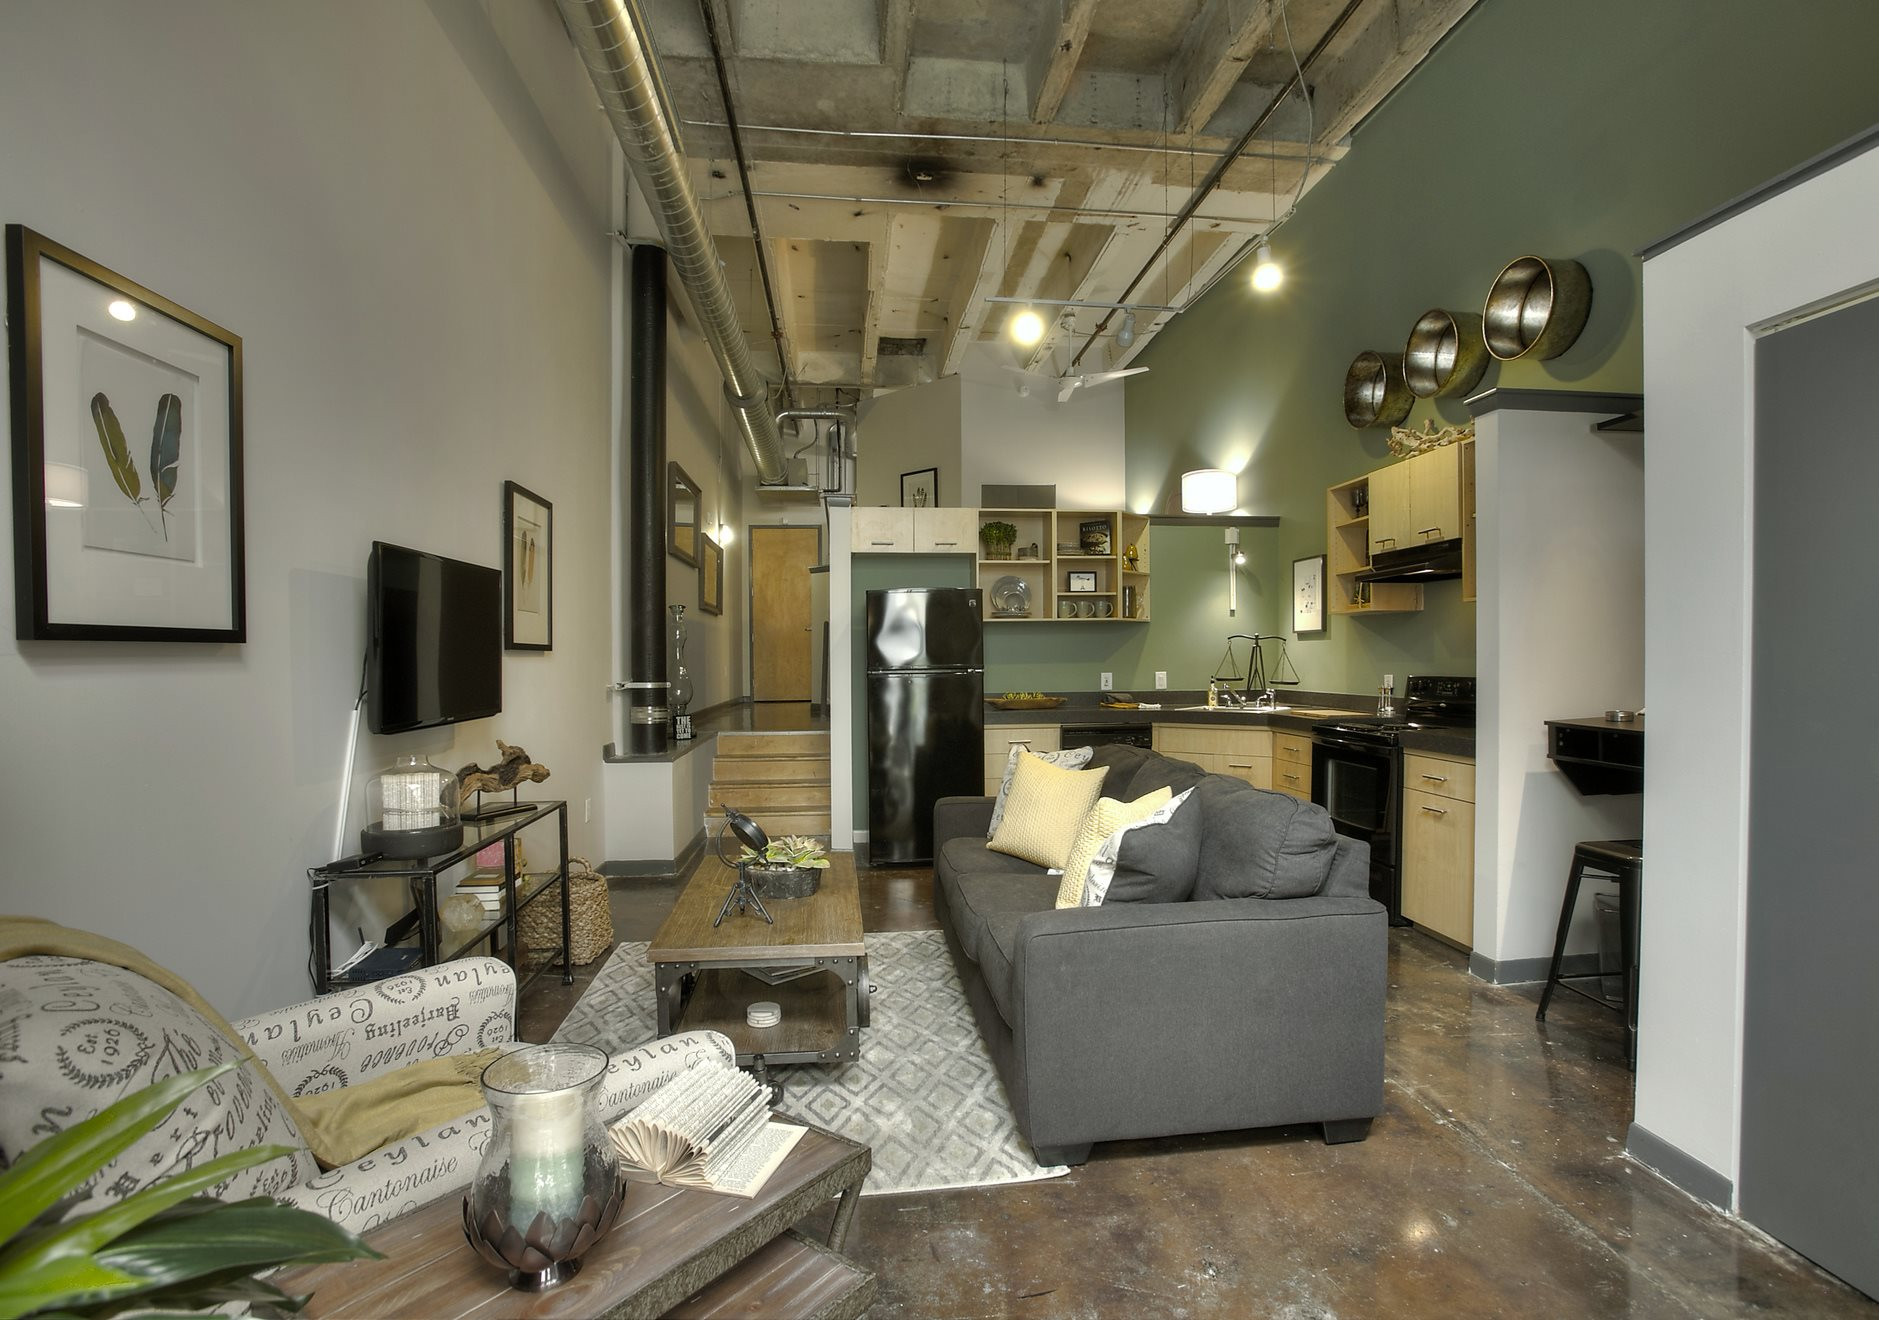 The Lofts of Winter Park Village homepagegallery 5